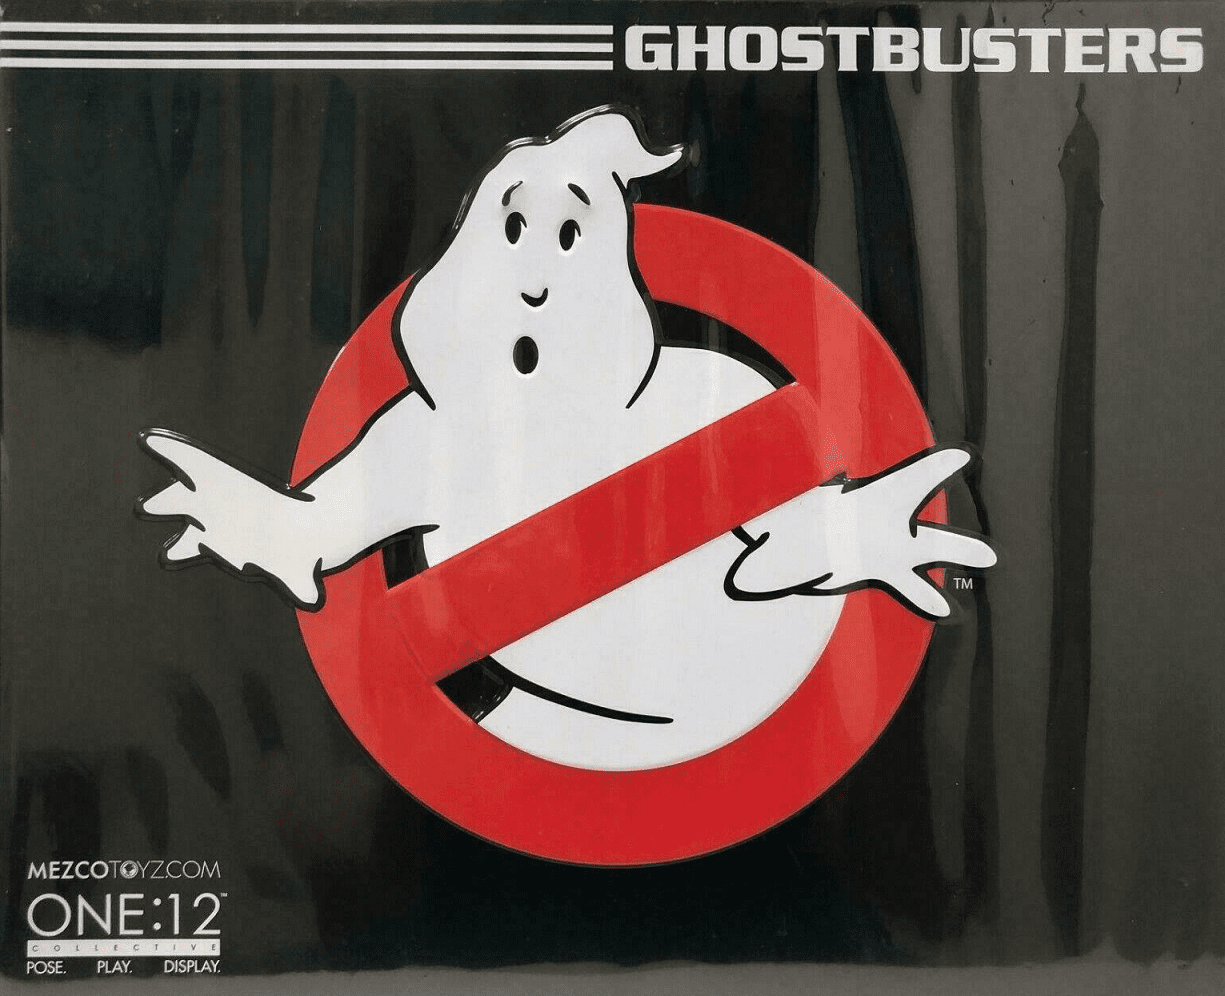 Mezco One 12 Ghostbusters Deluxe Box Set